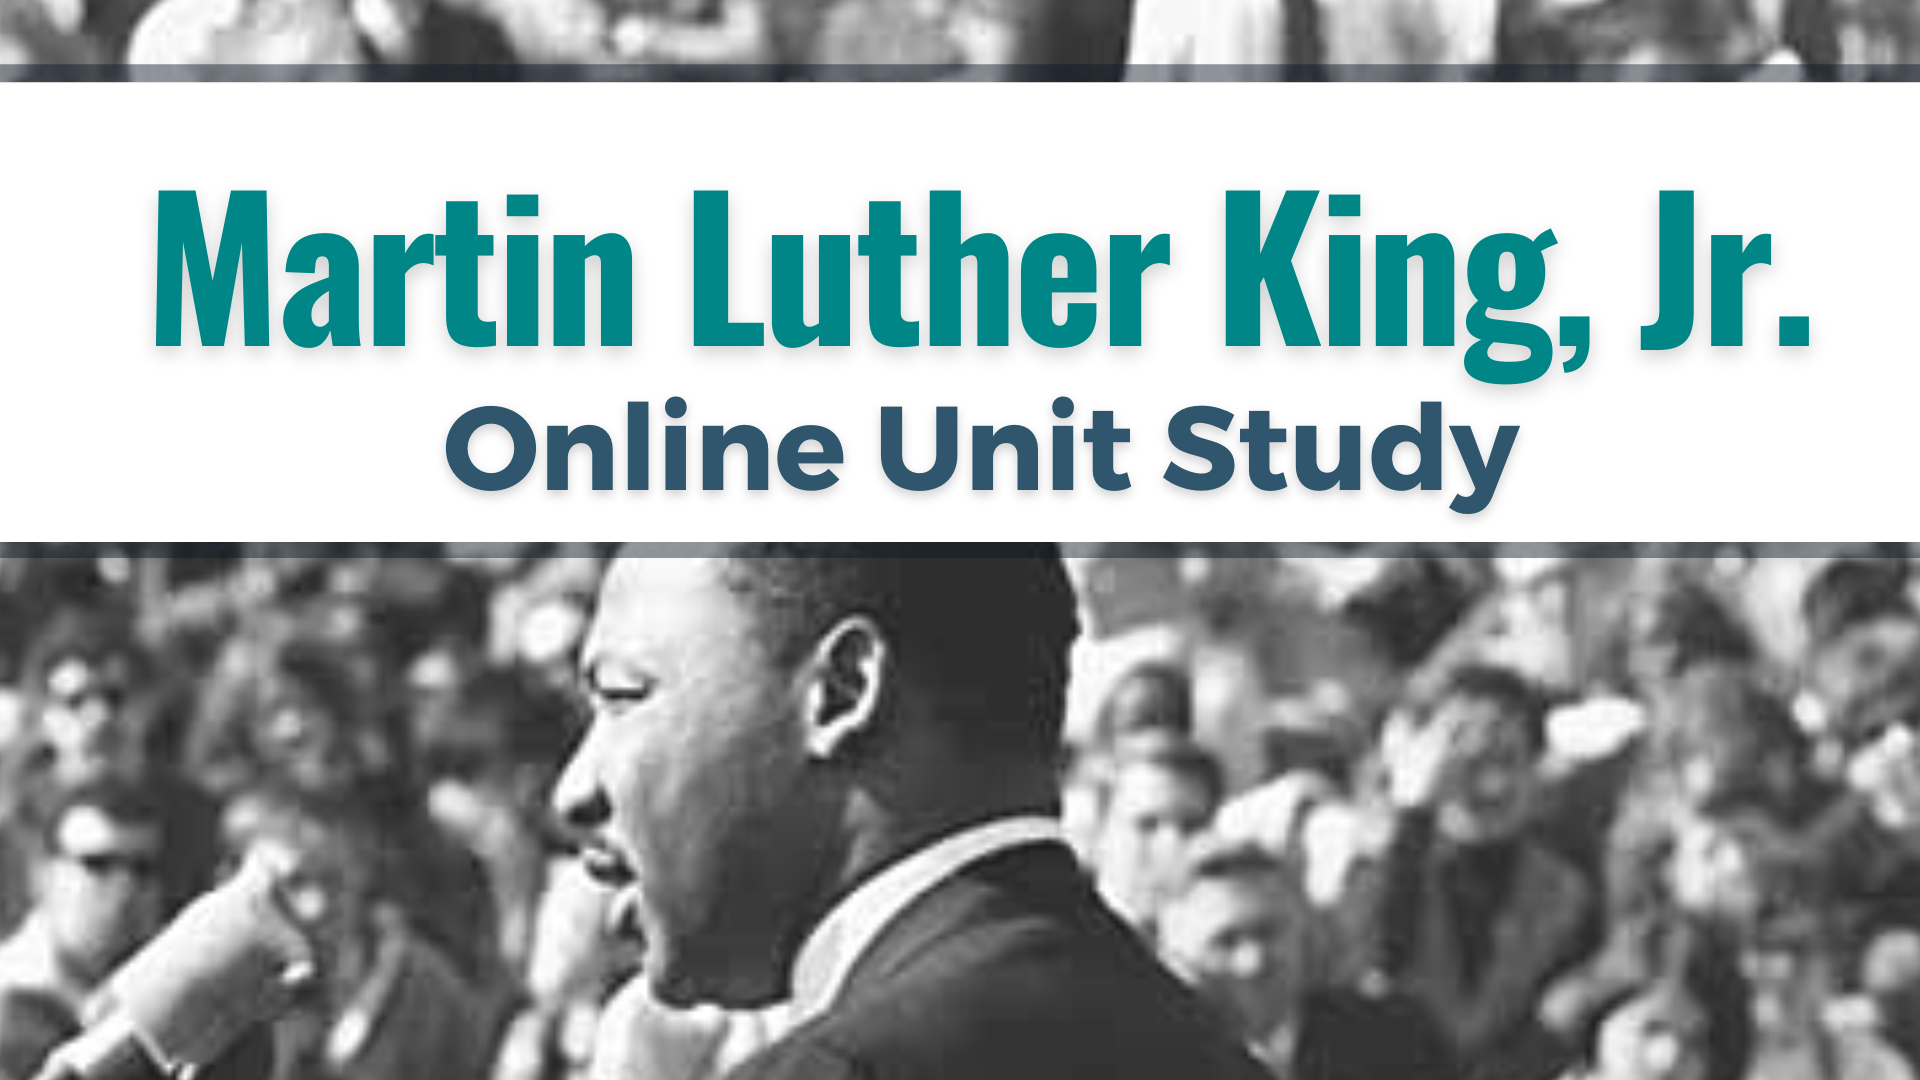 Martin Luther King Jr. Unit Study. Learn about the Civil Rights Movement and Dr. King's legacy. Click for more details.